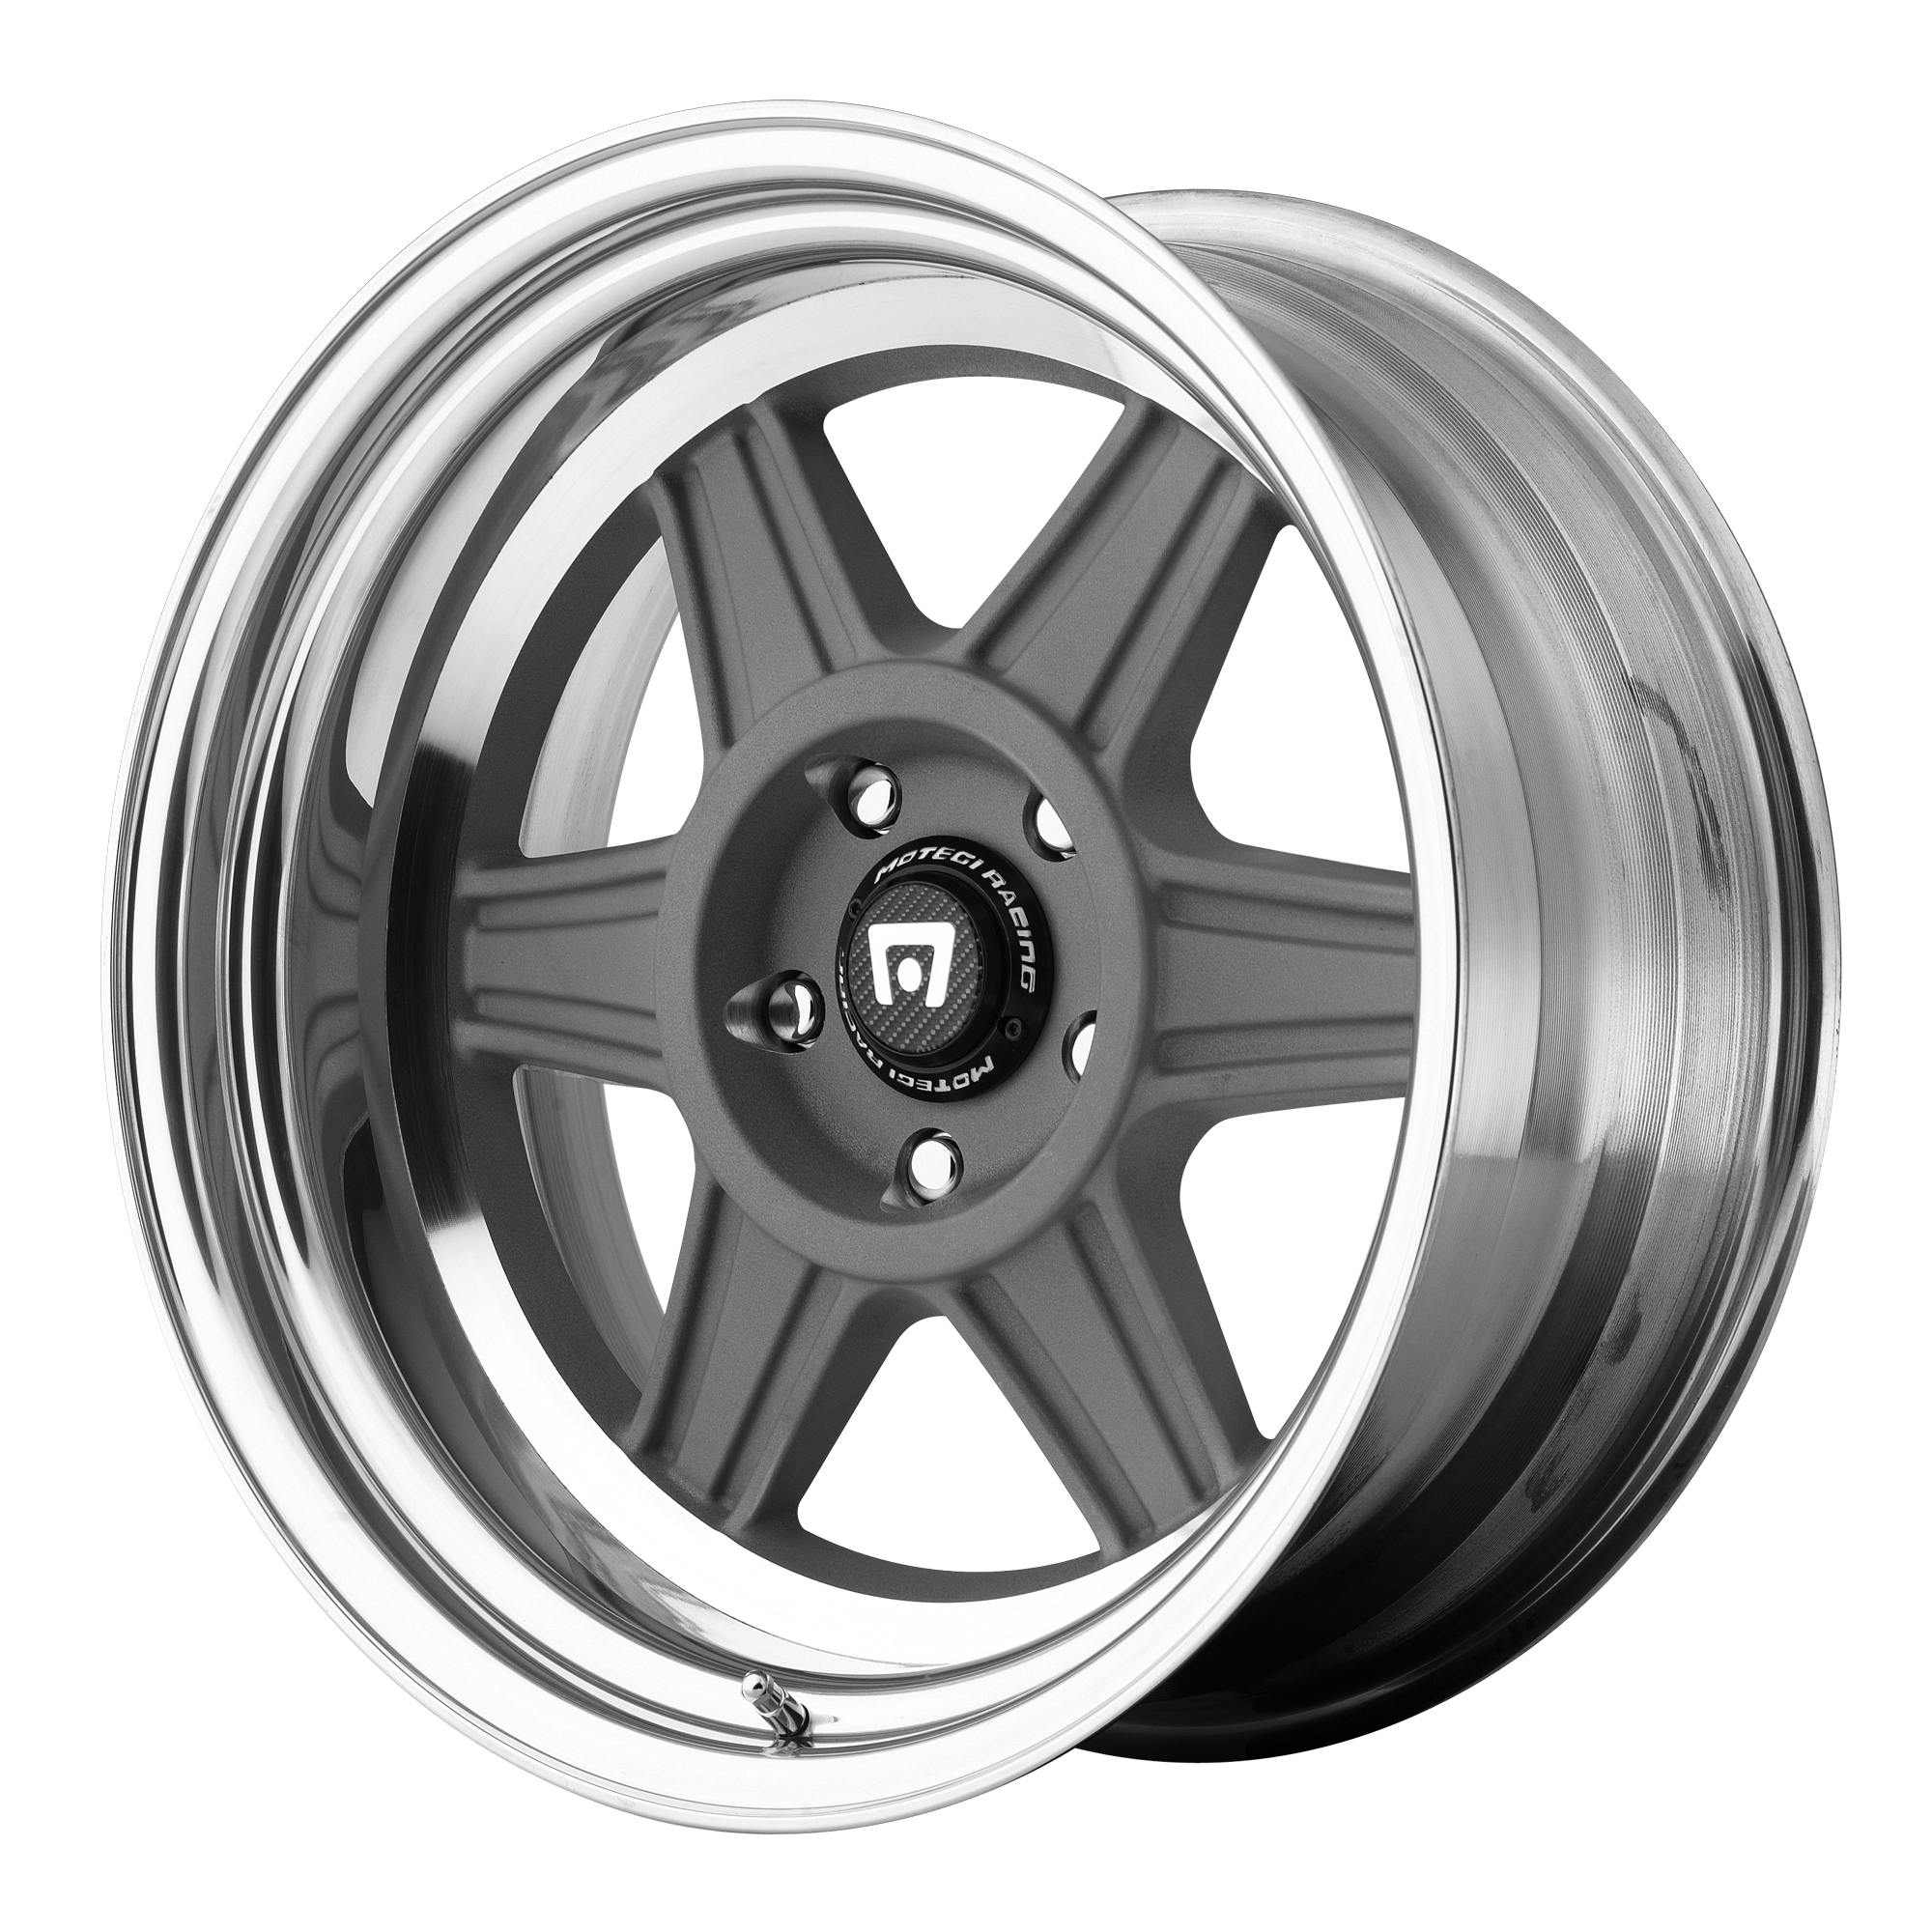 Motegi Racing Wheels MR224 MAG Gray w/ Polished Barrel